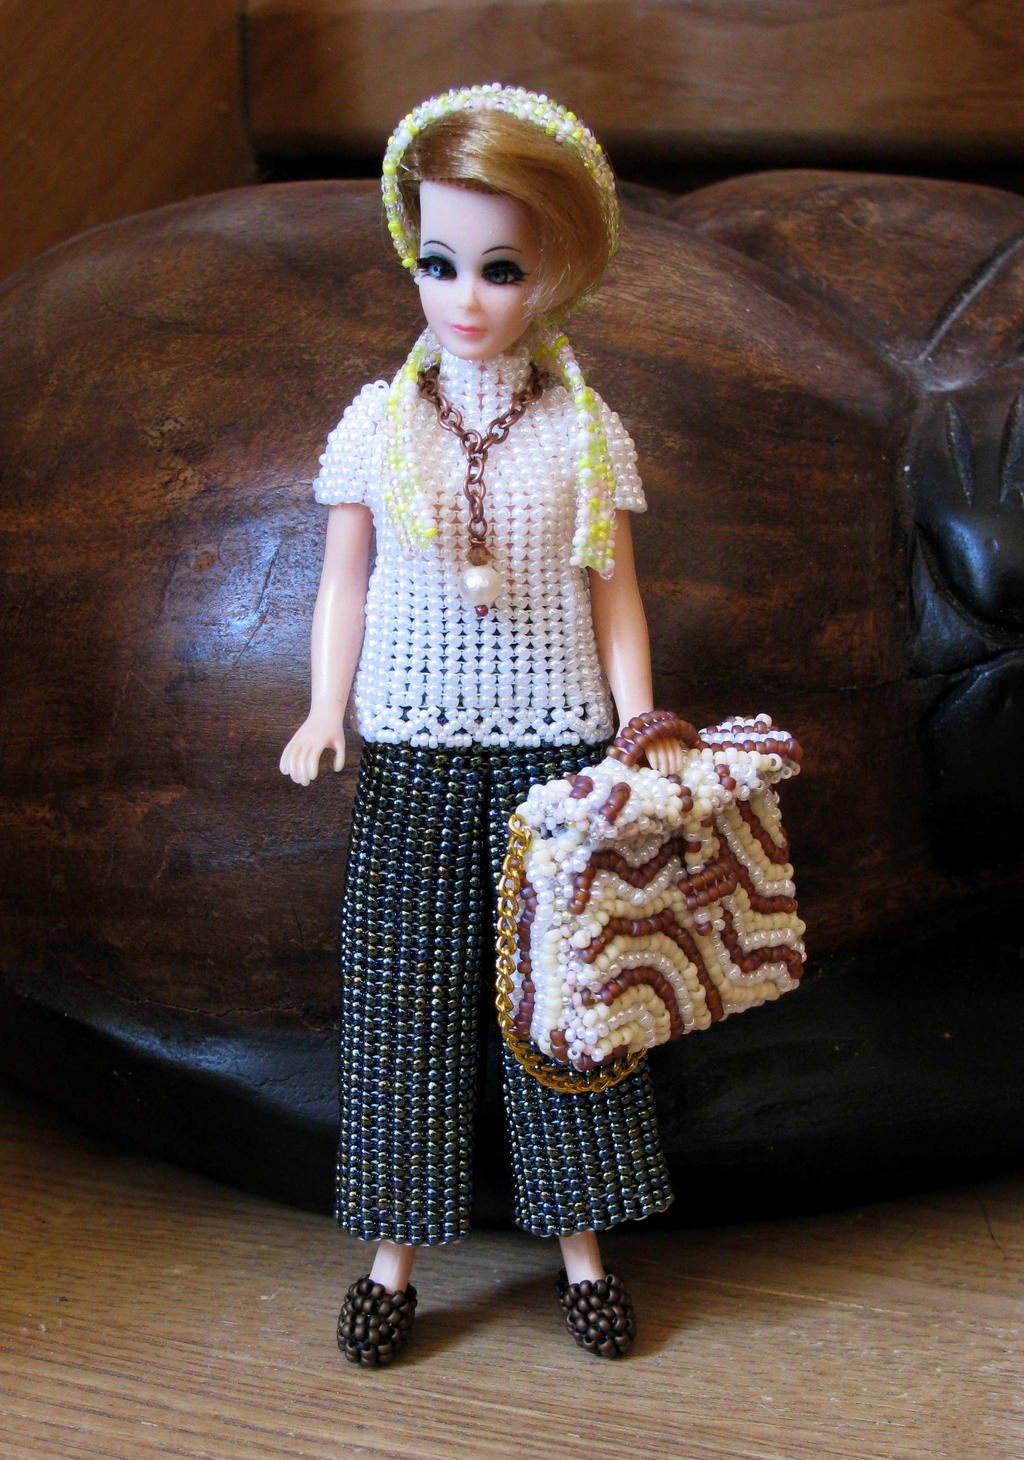 Travelling Jessica beaded doll outfit